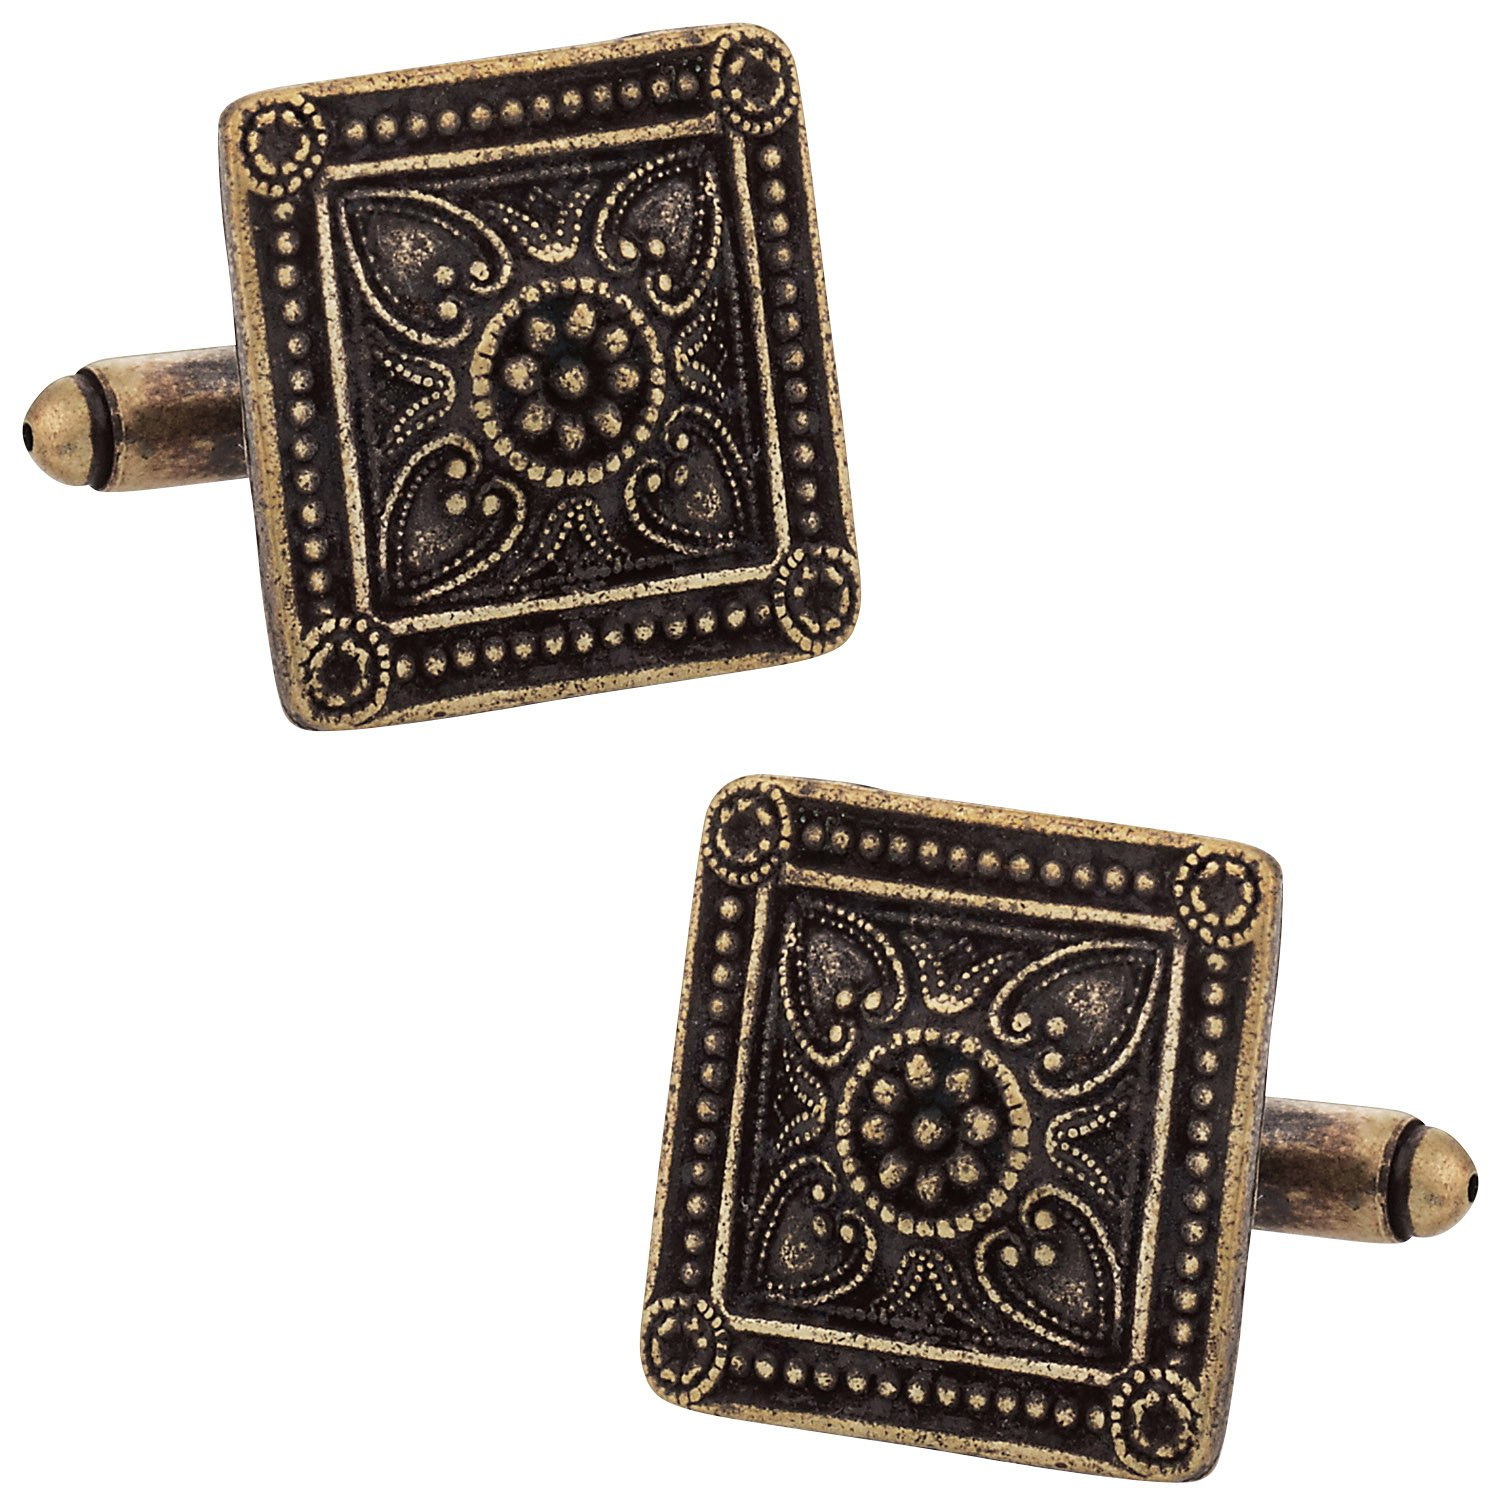 Brozen Cufflinks for 8th wedding anniversary gifts